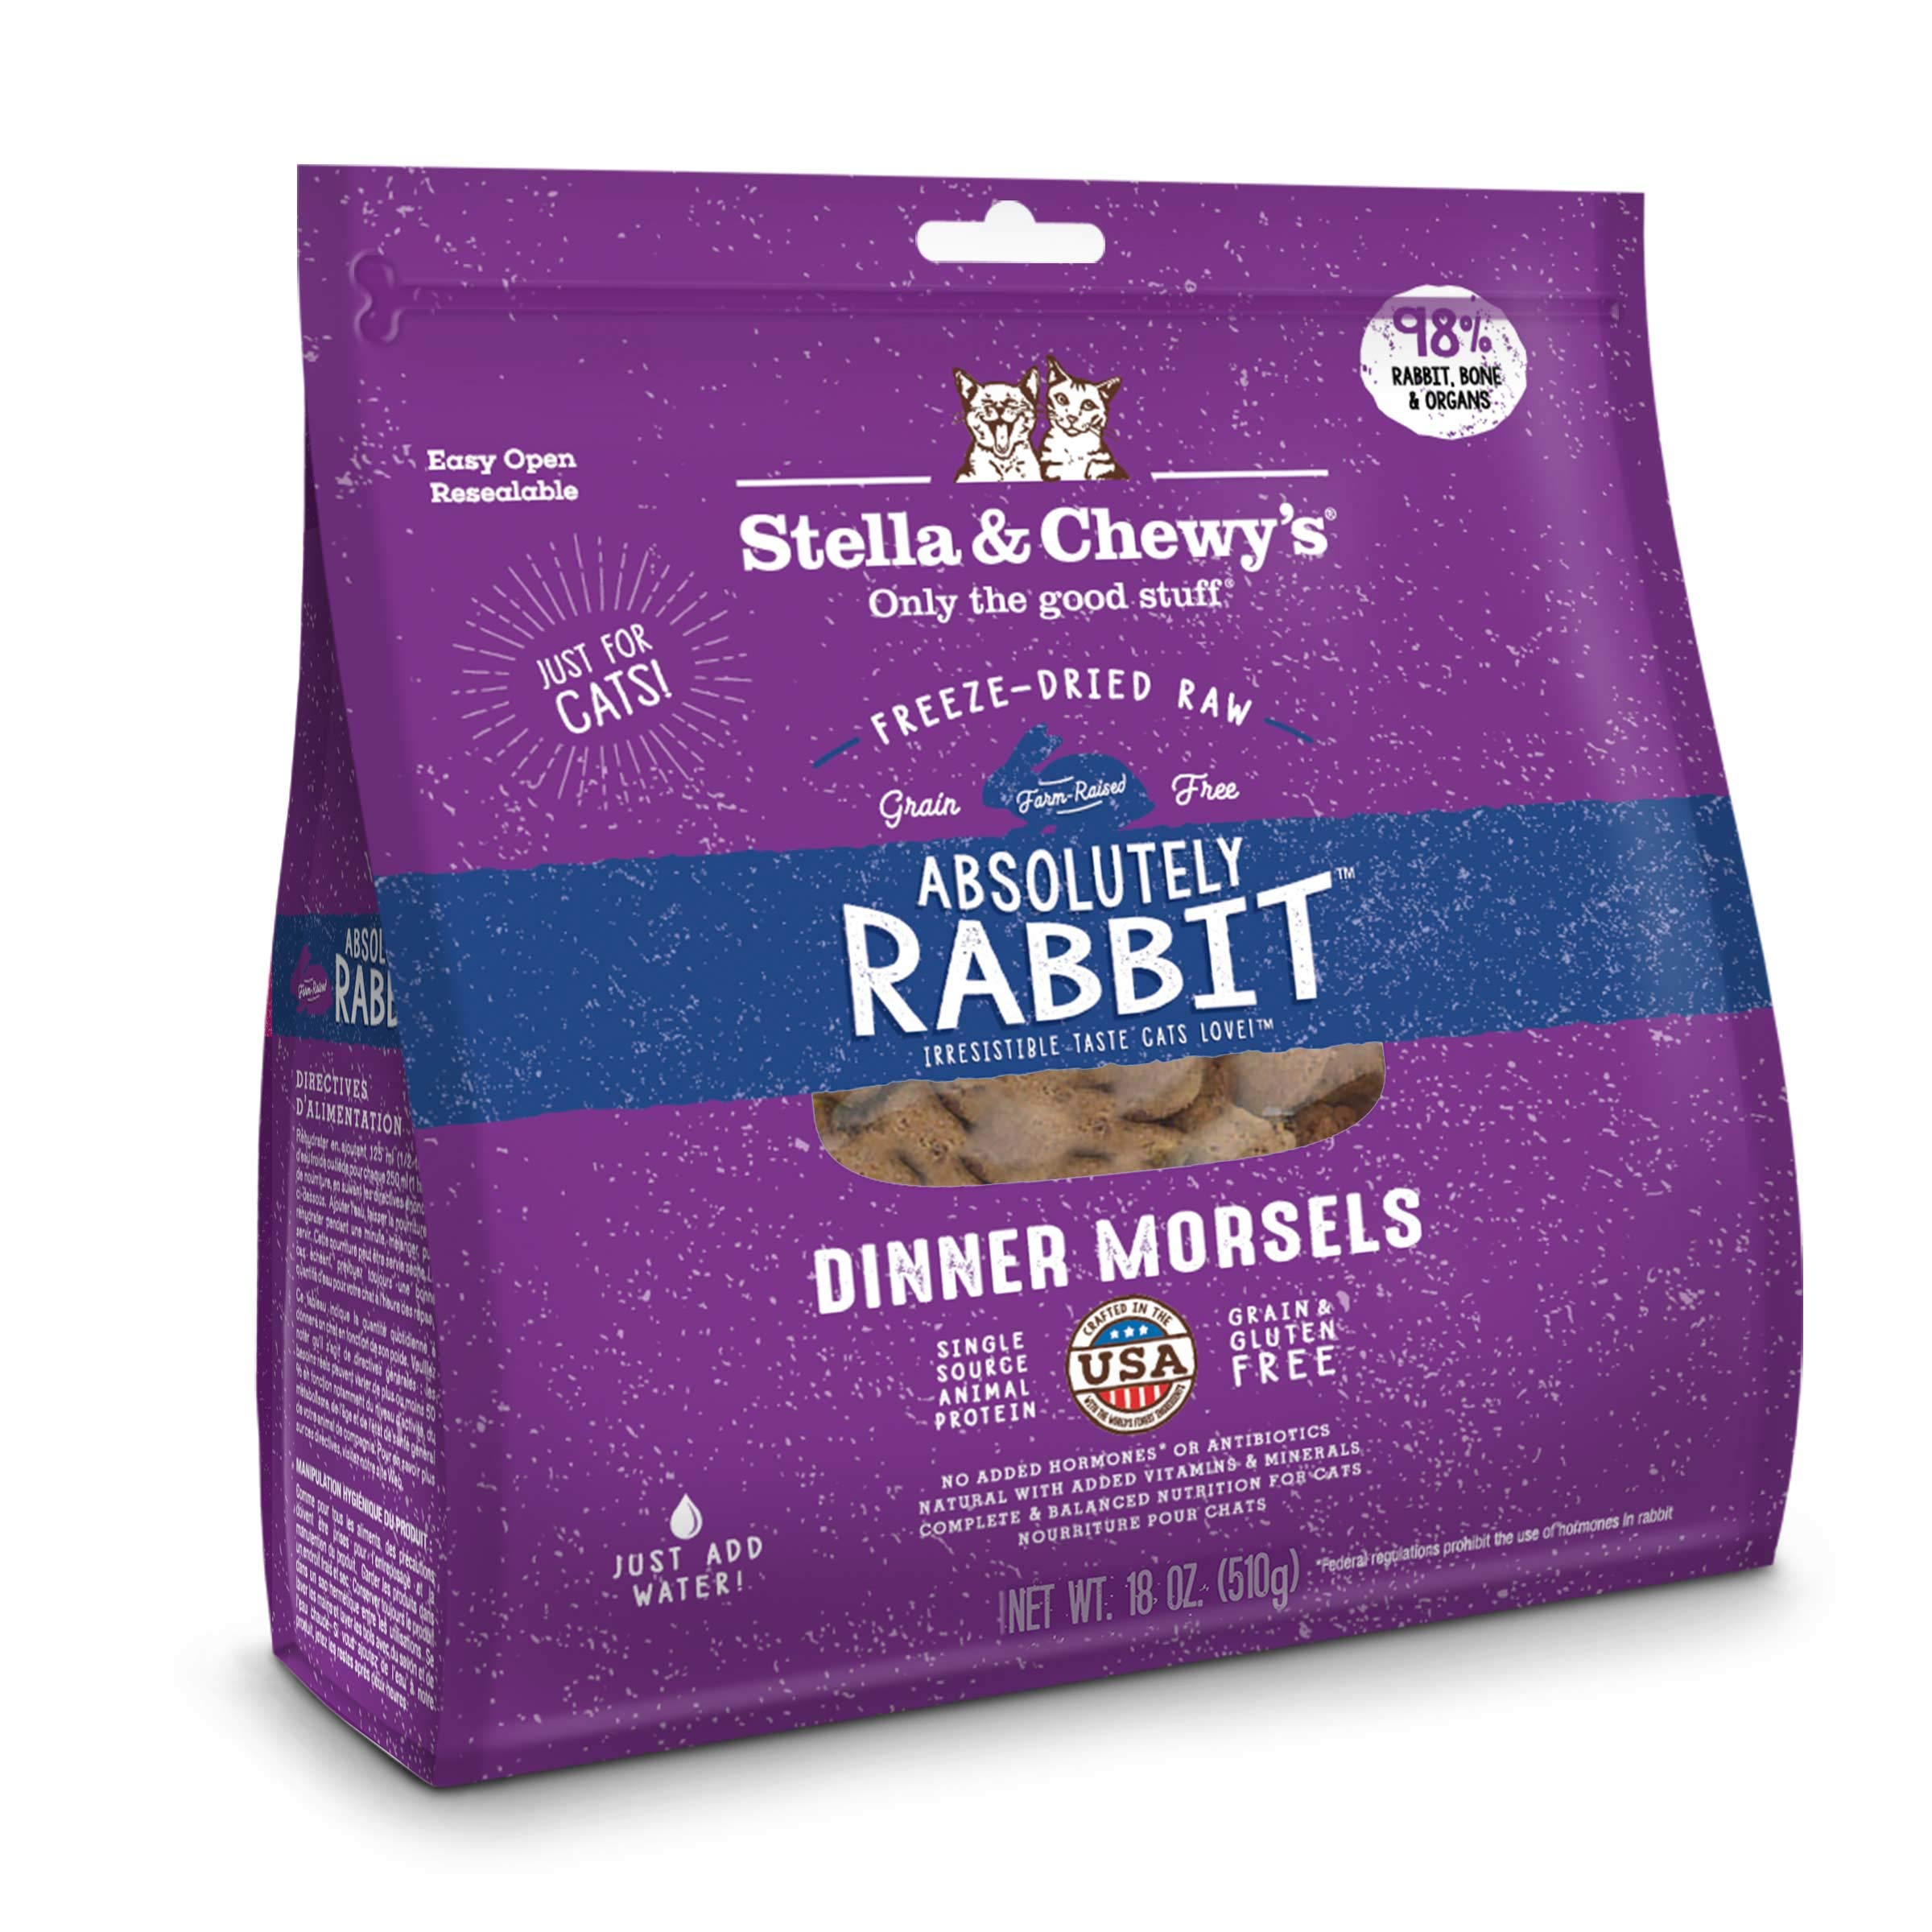 Stella & Chewy's Freeze-Dried Raw Absolutely Rabbit Dinner Morsels Cat Food, 18 oz. Bag by Stella & Chewy's